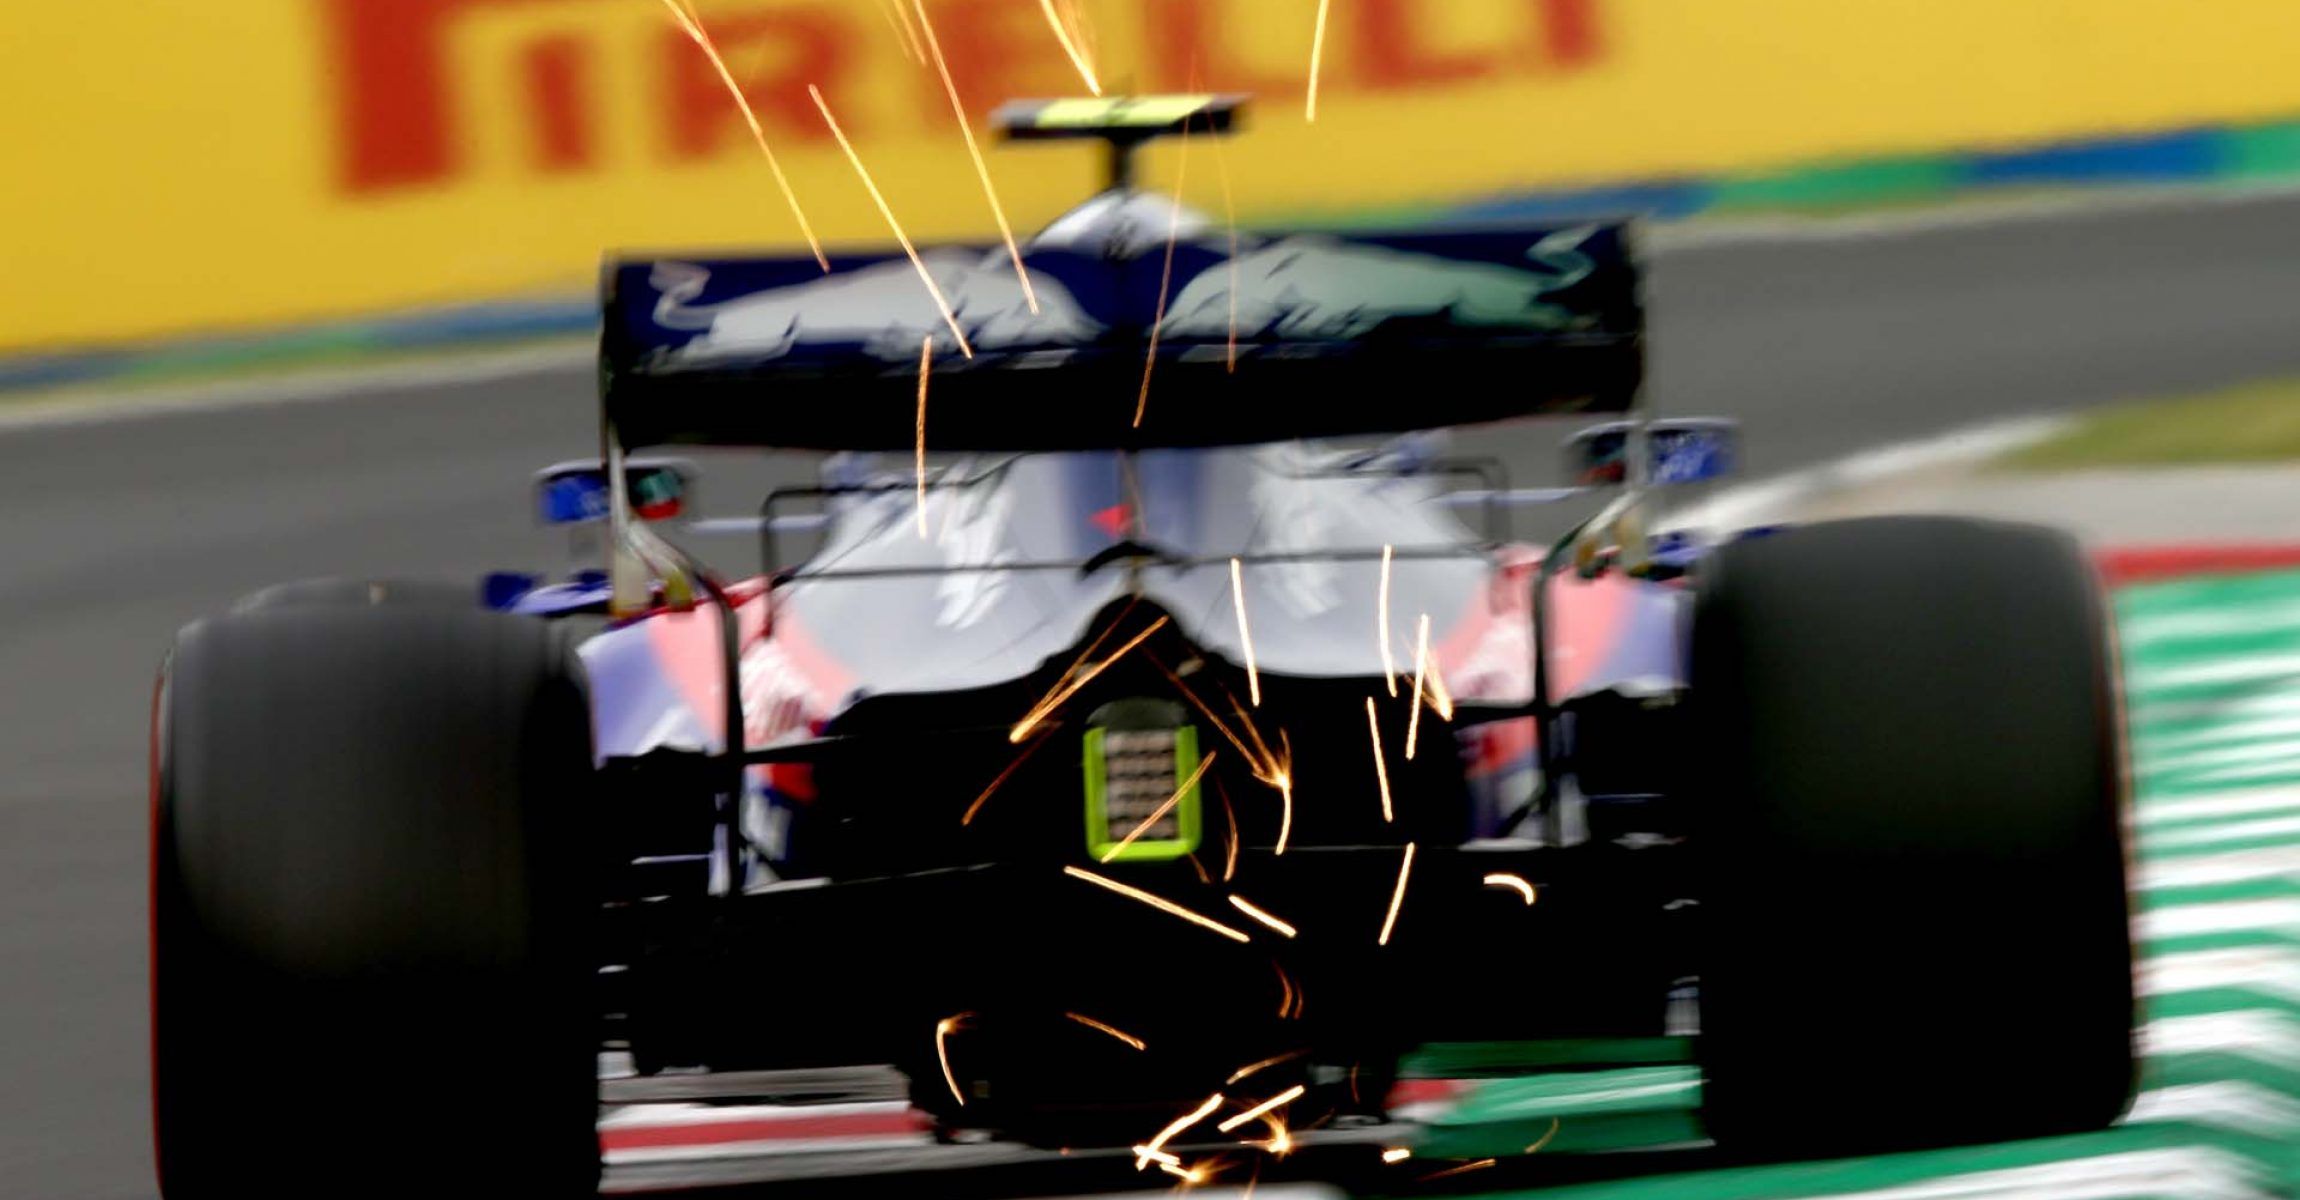 BUDAPEST, HUNGARY - AUGUST 02: Sparks fly behind Alexander Albon of Thailand driving the (23) Scuderia Toro Rosso STR14 Honda on track during practice for the F1 Grand Prix of Hungary at Hungaroring on August 02, 2019 in Budapest, Hungary. (Photo by Charles Coates/Getty Images) // Getty Images / Red Bull Content Pool  // AP-214VKTATS1W11 // Usage for editorial use only // Please go to www.redbullcontentpool.com for further information. //